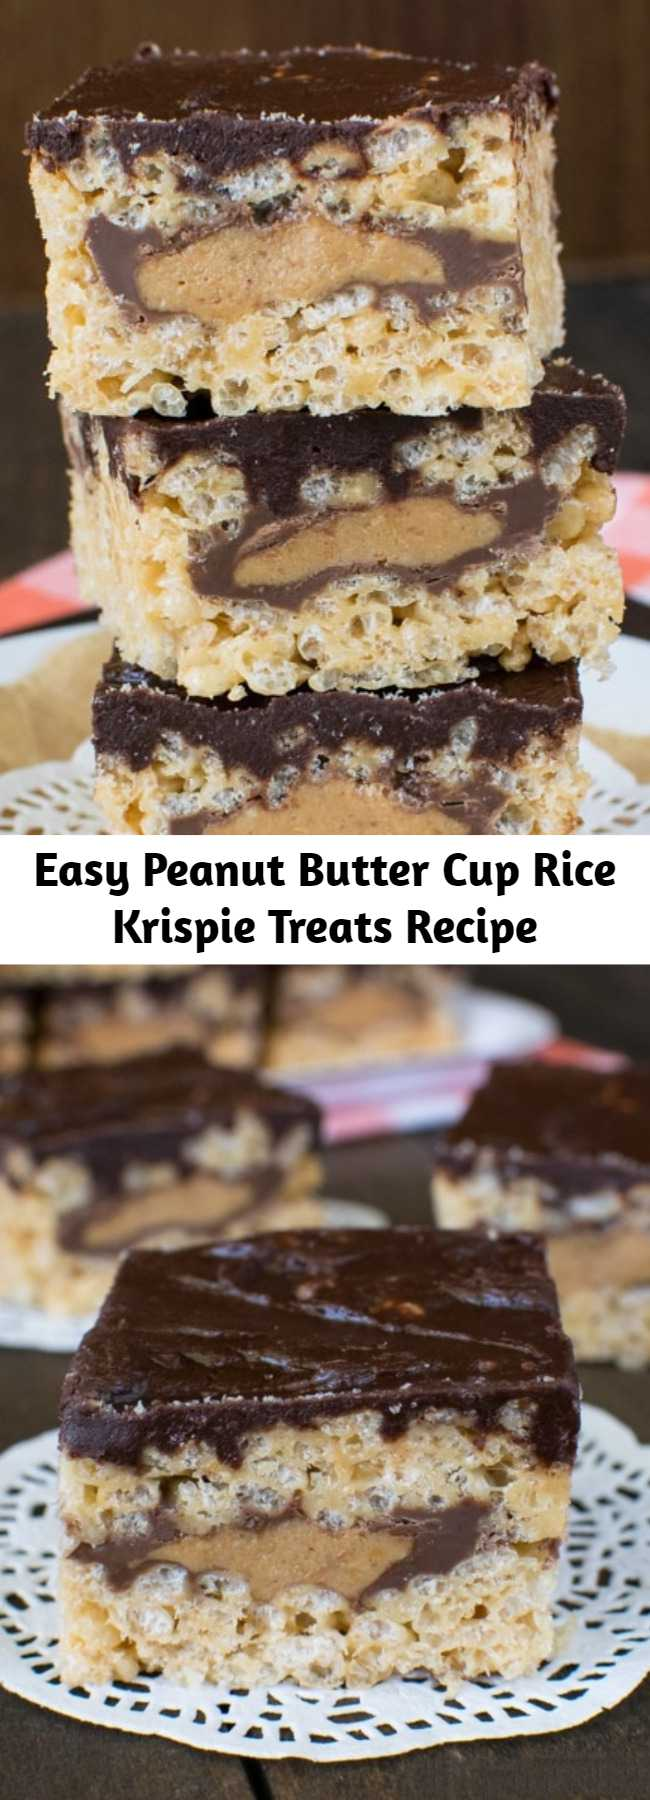 Easy Peanut Butter Cup Rice Krispie Treats Recipe - A layer of candy bars and chocolate make these Peanut Butter Cup Rice Krispie Treats the best no bake treats you will ever have. These will not last long when you bring them to picnics or barbecues.